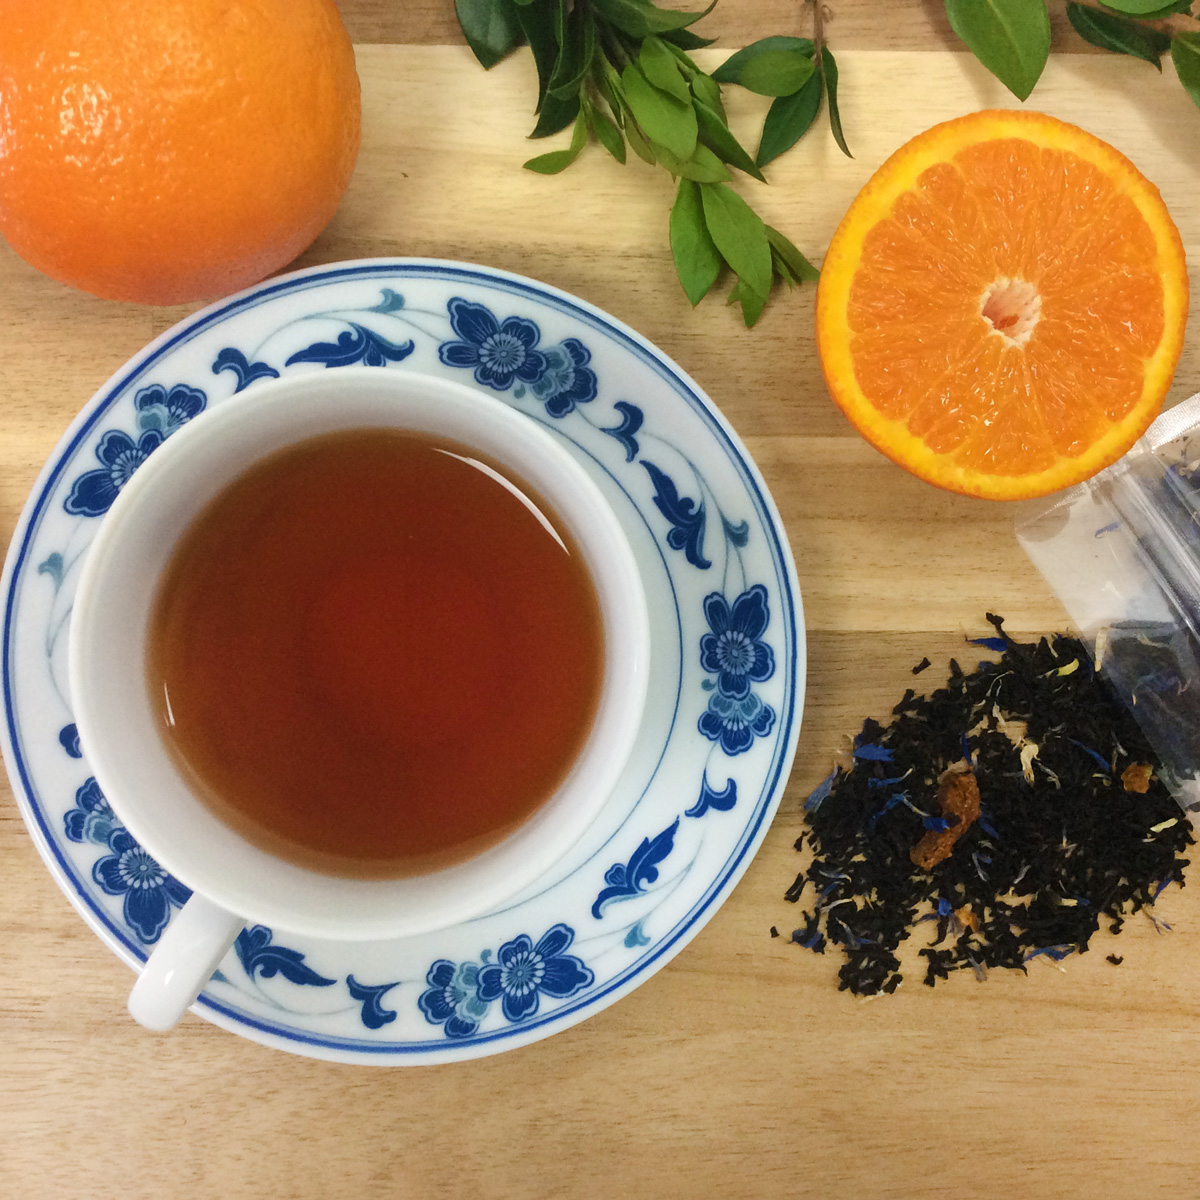 Overhead view of a white and blue teacup full of Earl Grey tea surrounded by loose leaf tea, oranges, and greenery on a wooden table.